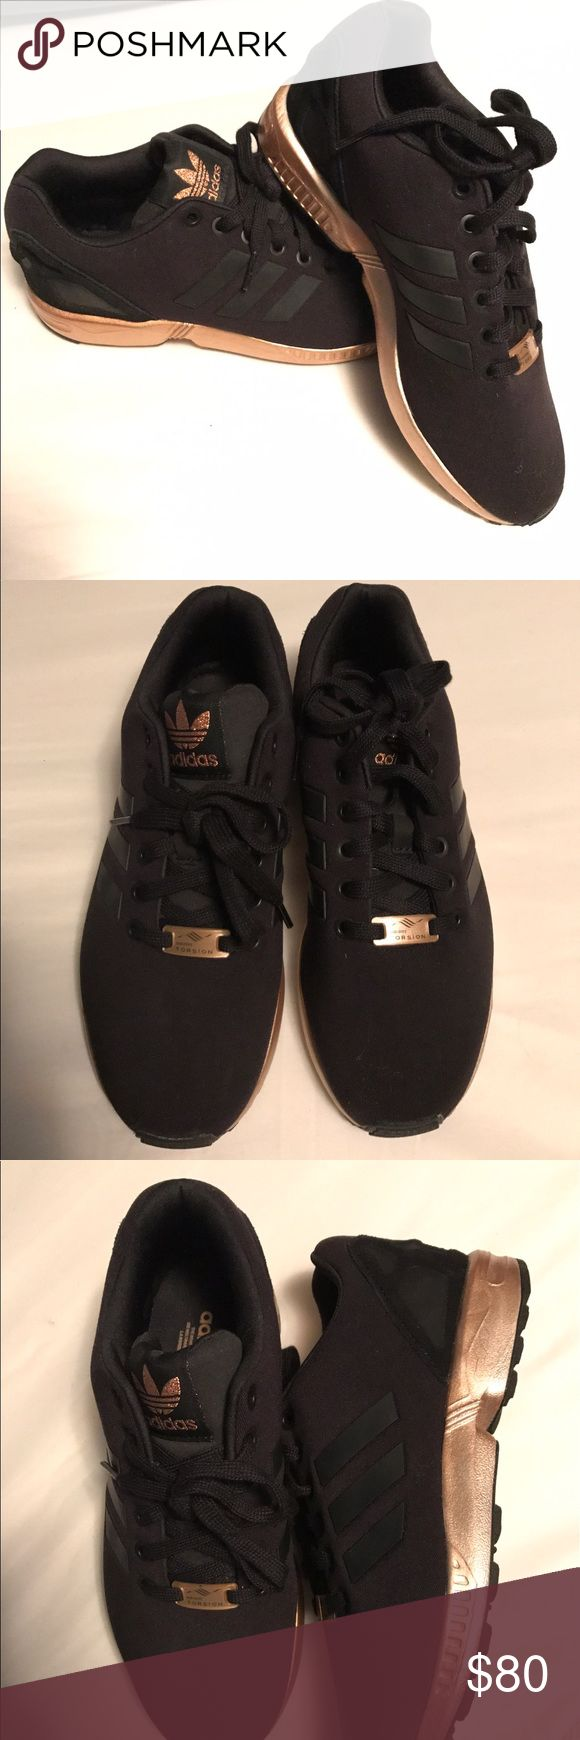 NEW - Copper and Black Adidas Torision FX Flux Copper and black Adidas Torsion ZX Flux - worn once *will not come in original shoe box* shoe runs slightly big, Im usually a 7 and fit in the 6.5 adidas Shoes Sneakers